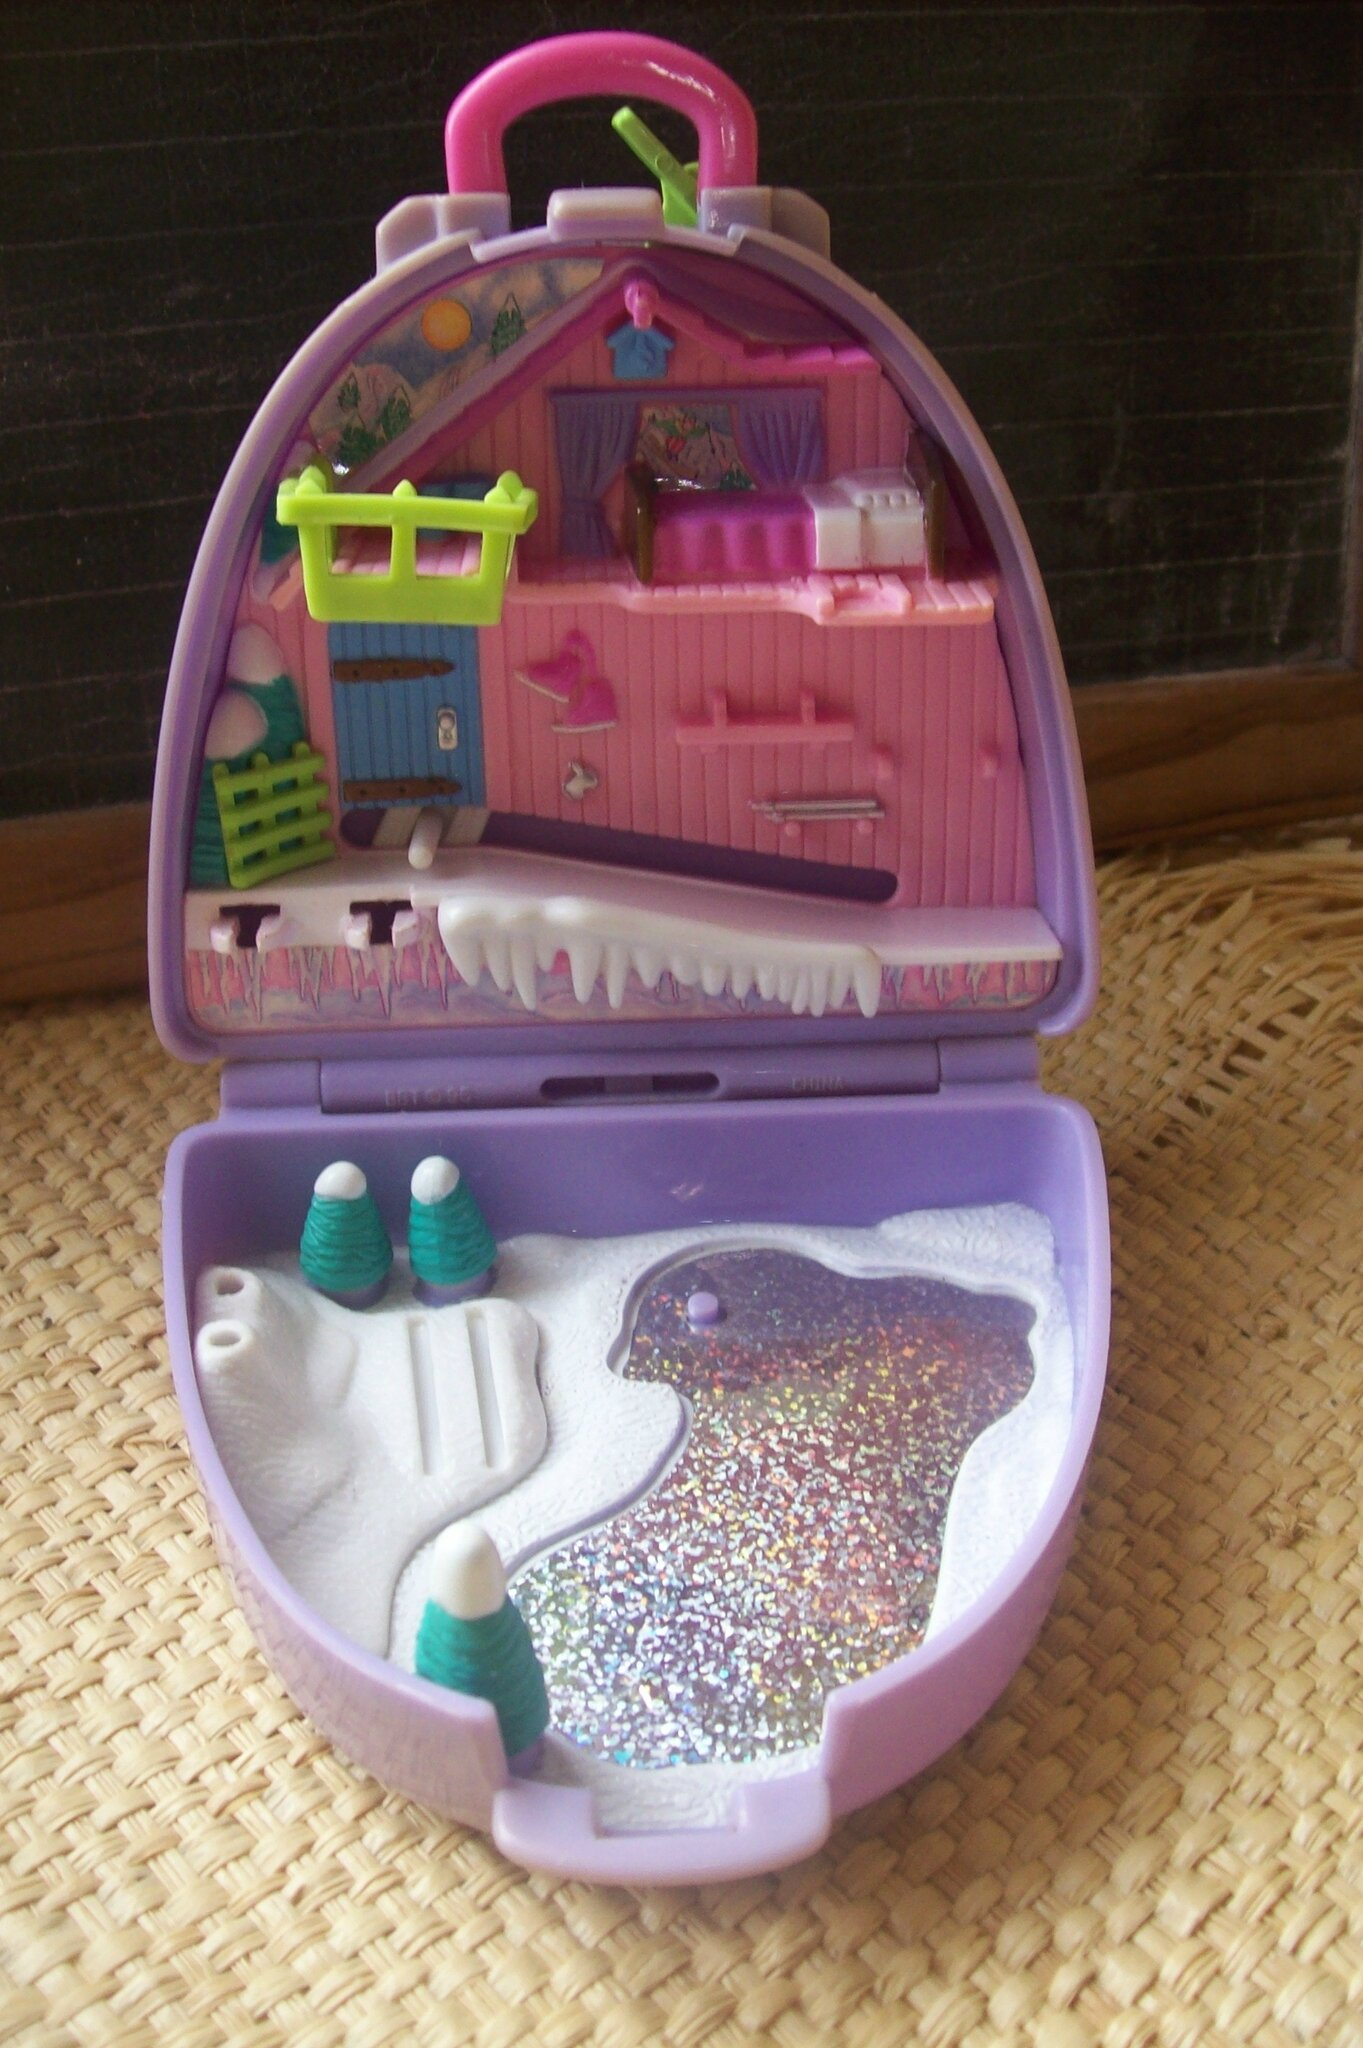 Personnage Decoration Jardin Valise Polly Pocket - Le Gren'son